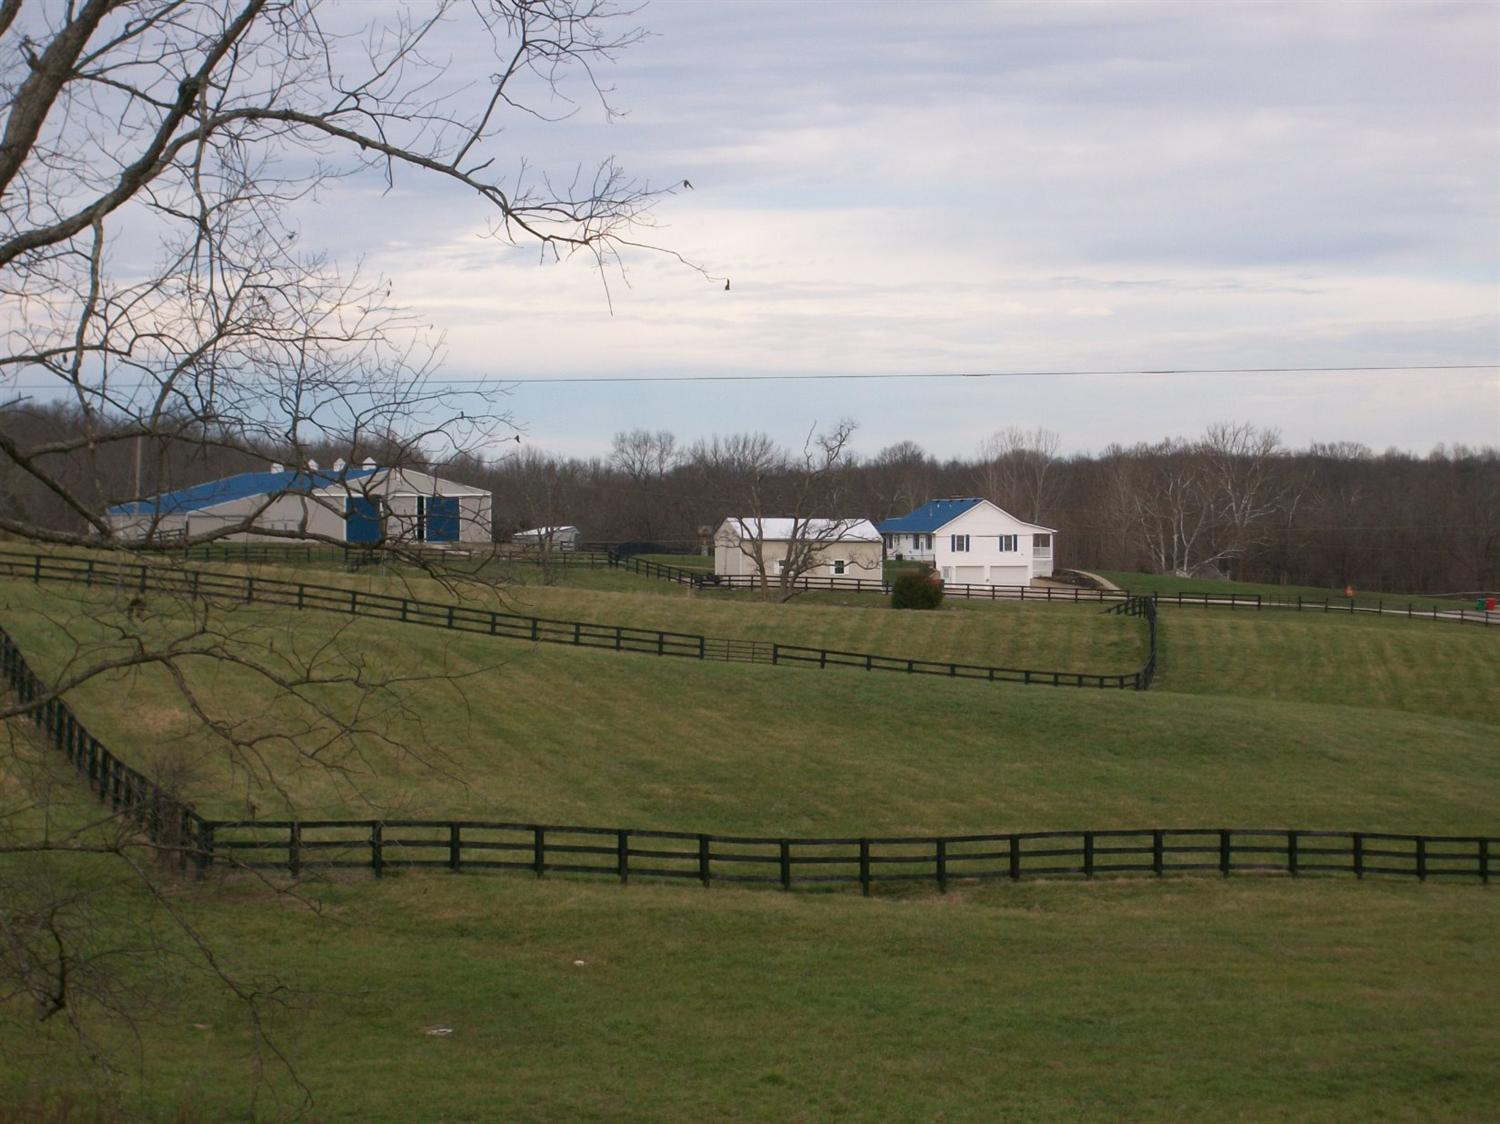 Property for sale at 205%20Salyers%20Ln,%20Frankfort,%20KY%2040076